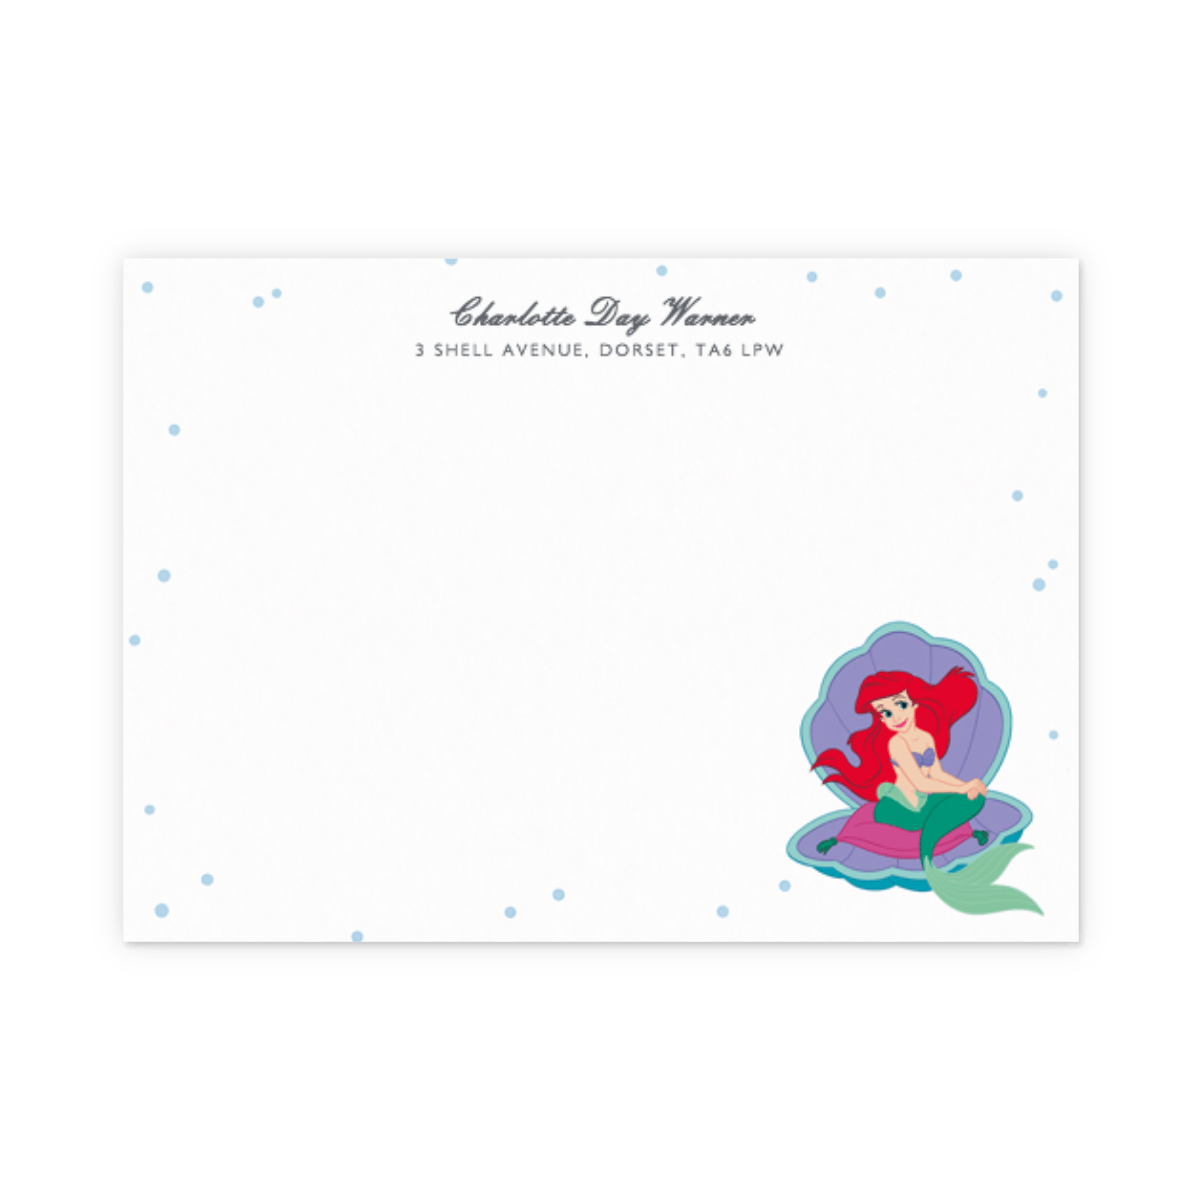 Https%3a%2f%2fwww.papier.com%2fproduct image%2f35332%2f10%2fthe little mermaid 8834 vorderseite 1551207869.png?ixlib=rb 1.1